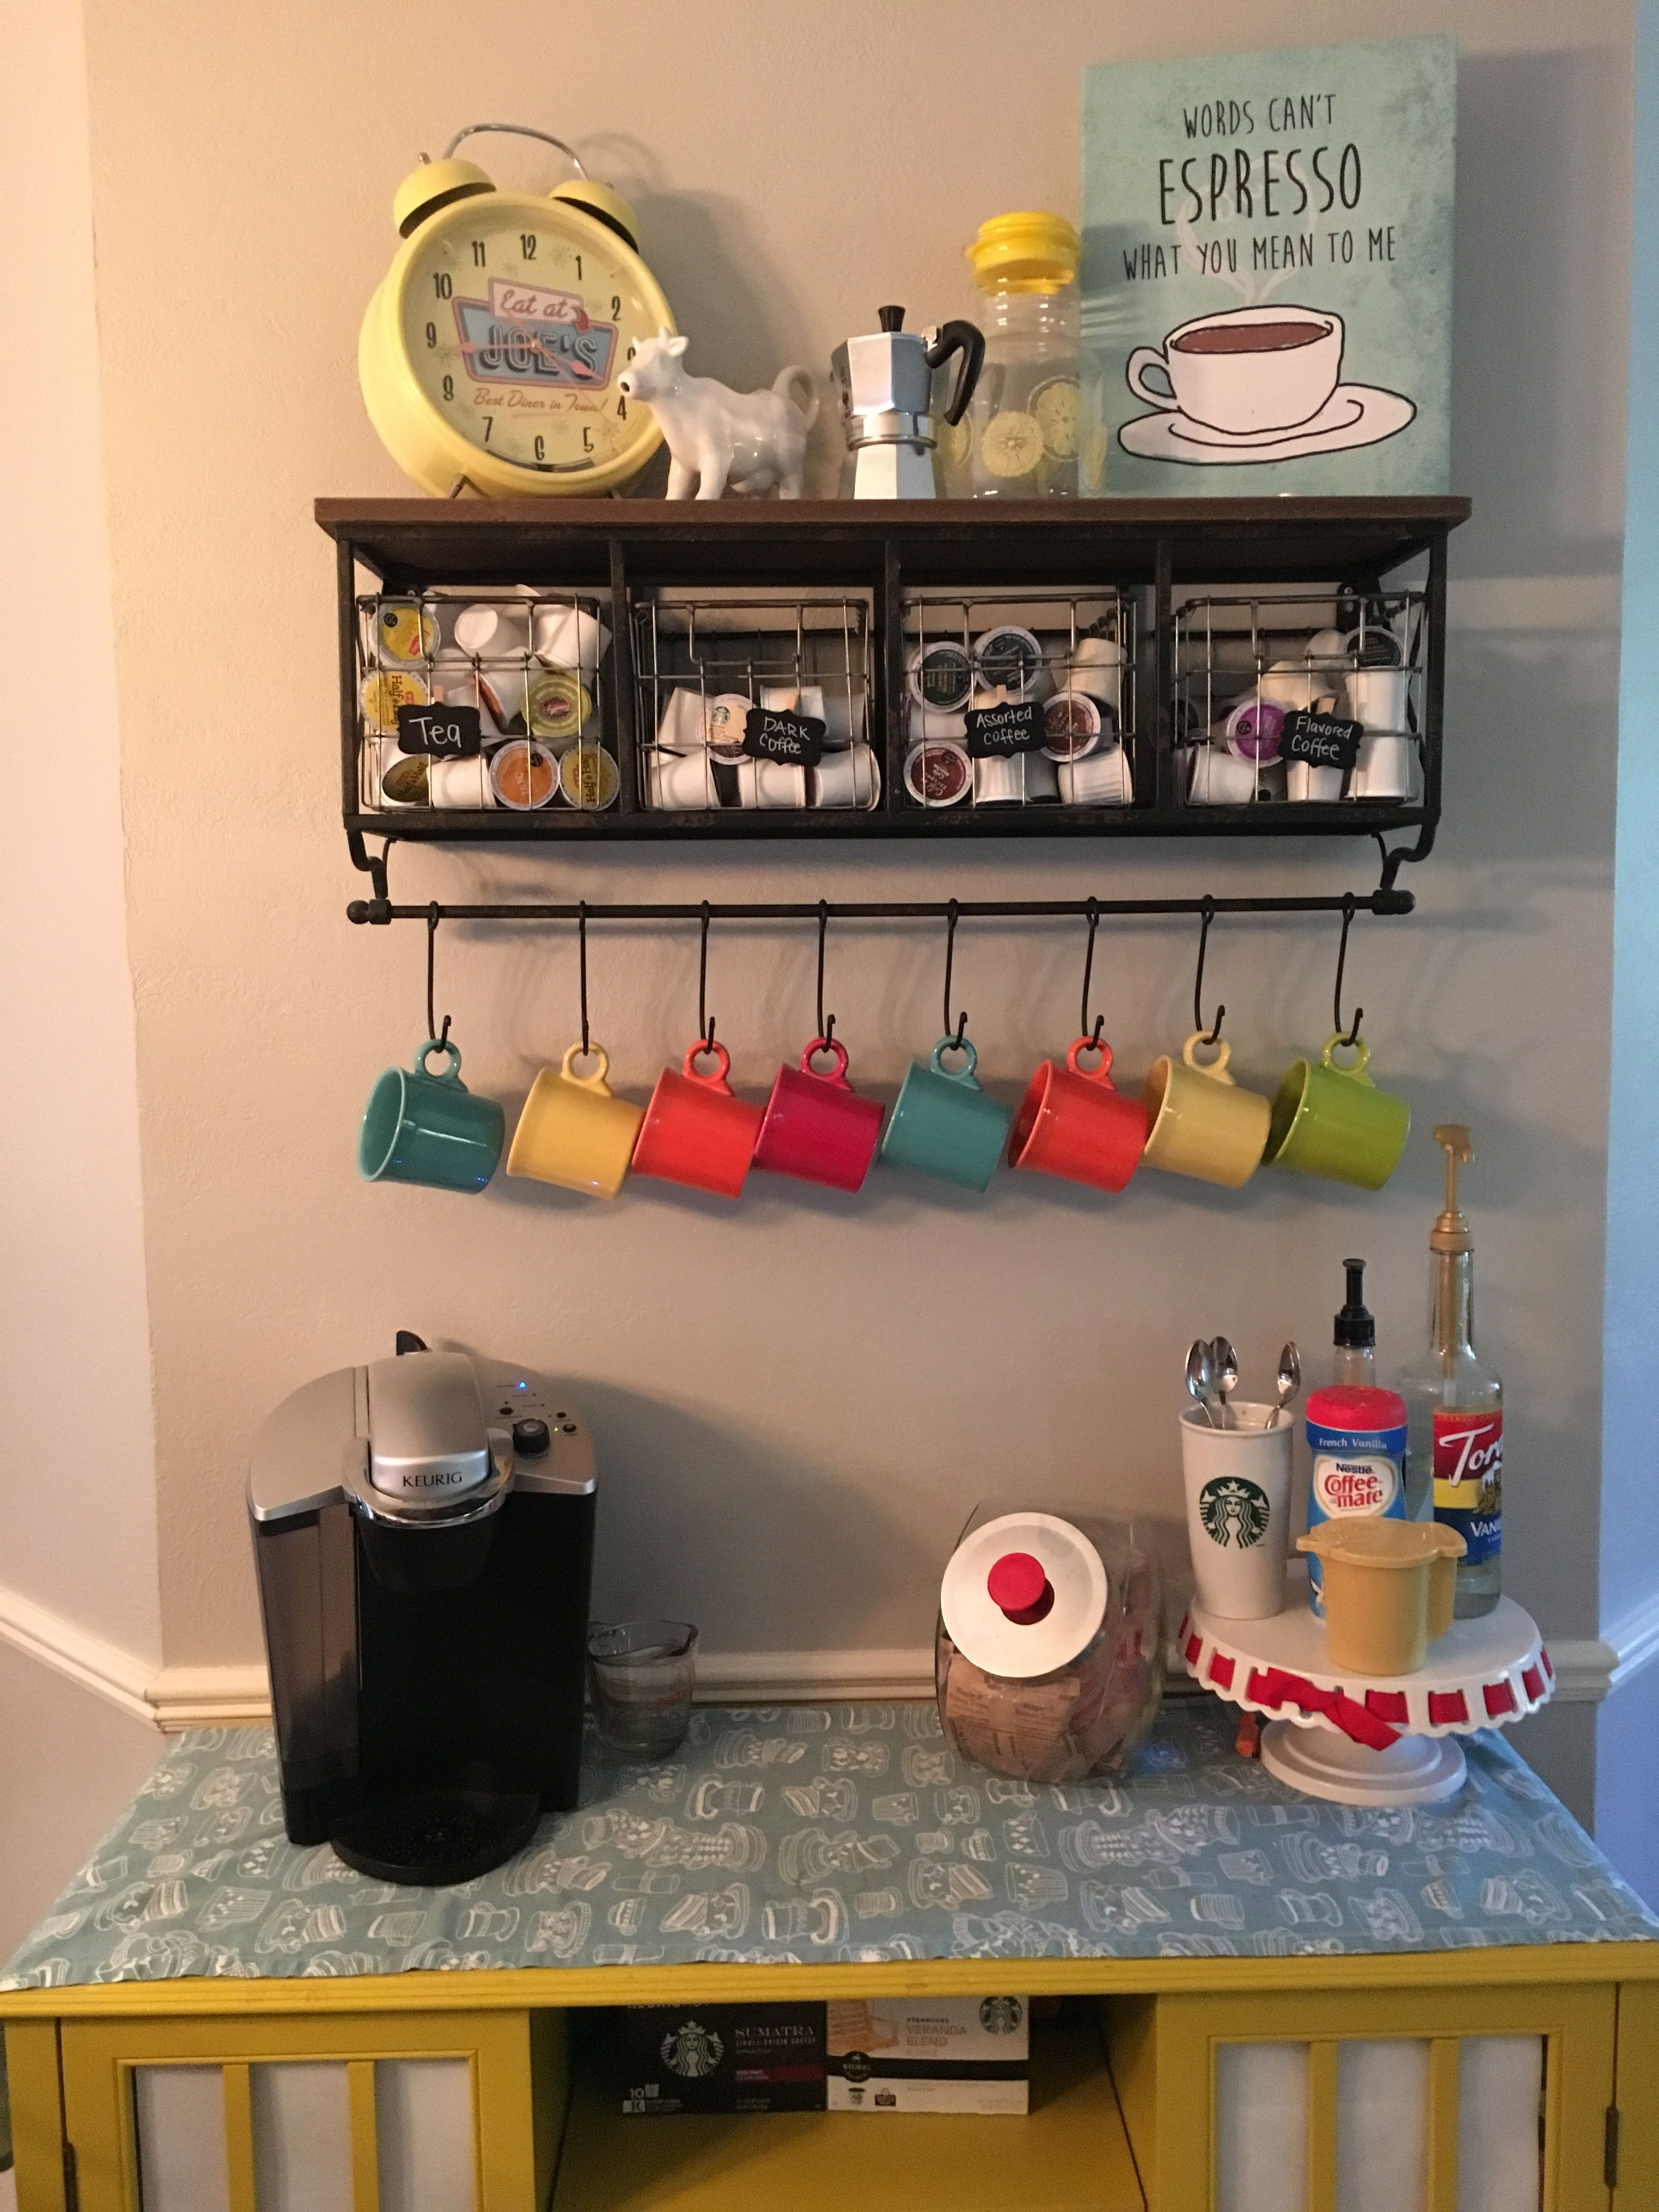 At Home Coffee Bar For Keurig Shelf From Hobby Lobby Fiesta Mugs And Vintage Thrifted Accessories Vintage Fiestaware Coffee Bars In Kitchen Coffee Bar Home Home Coffee Stations